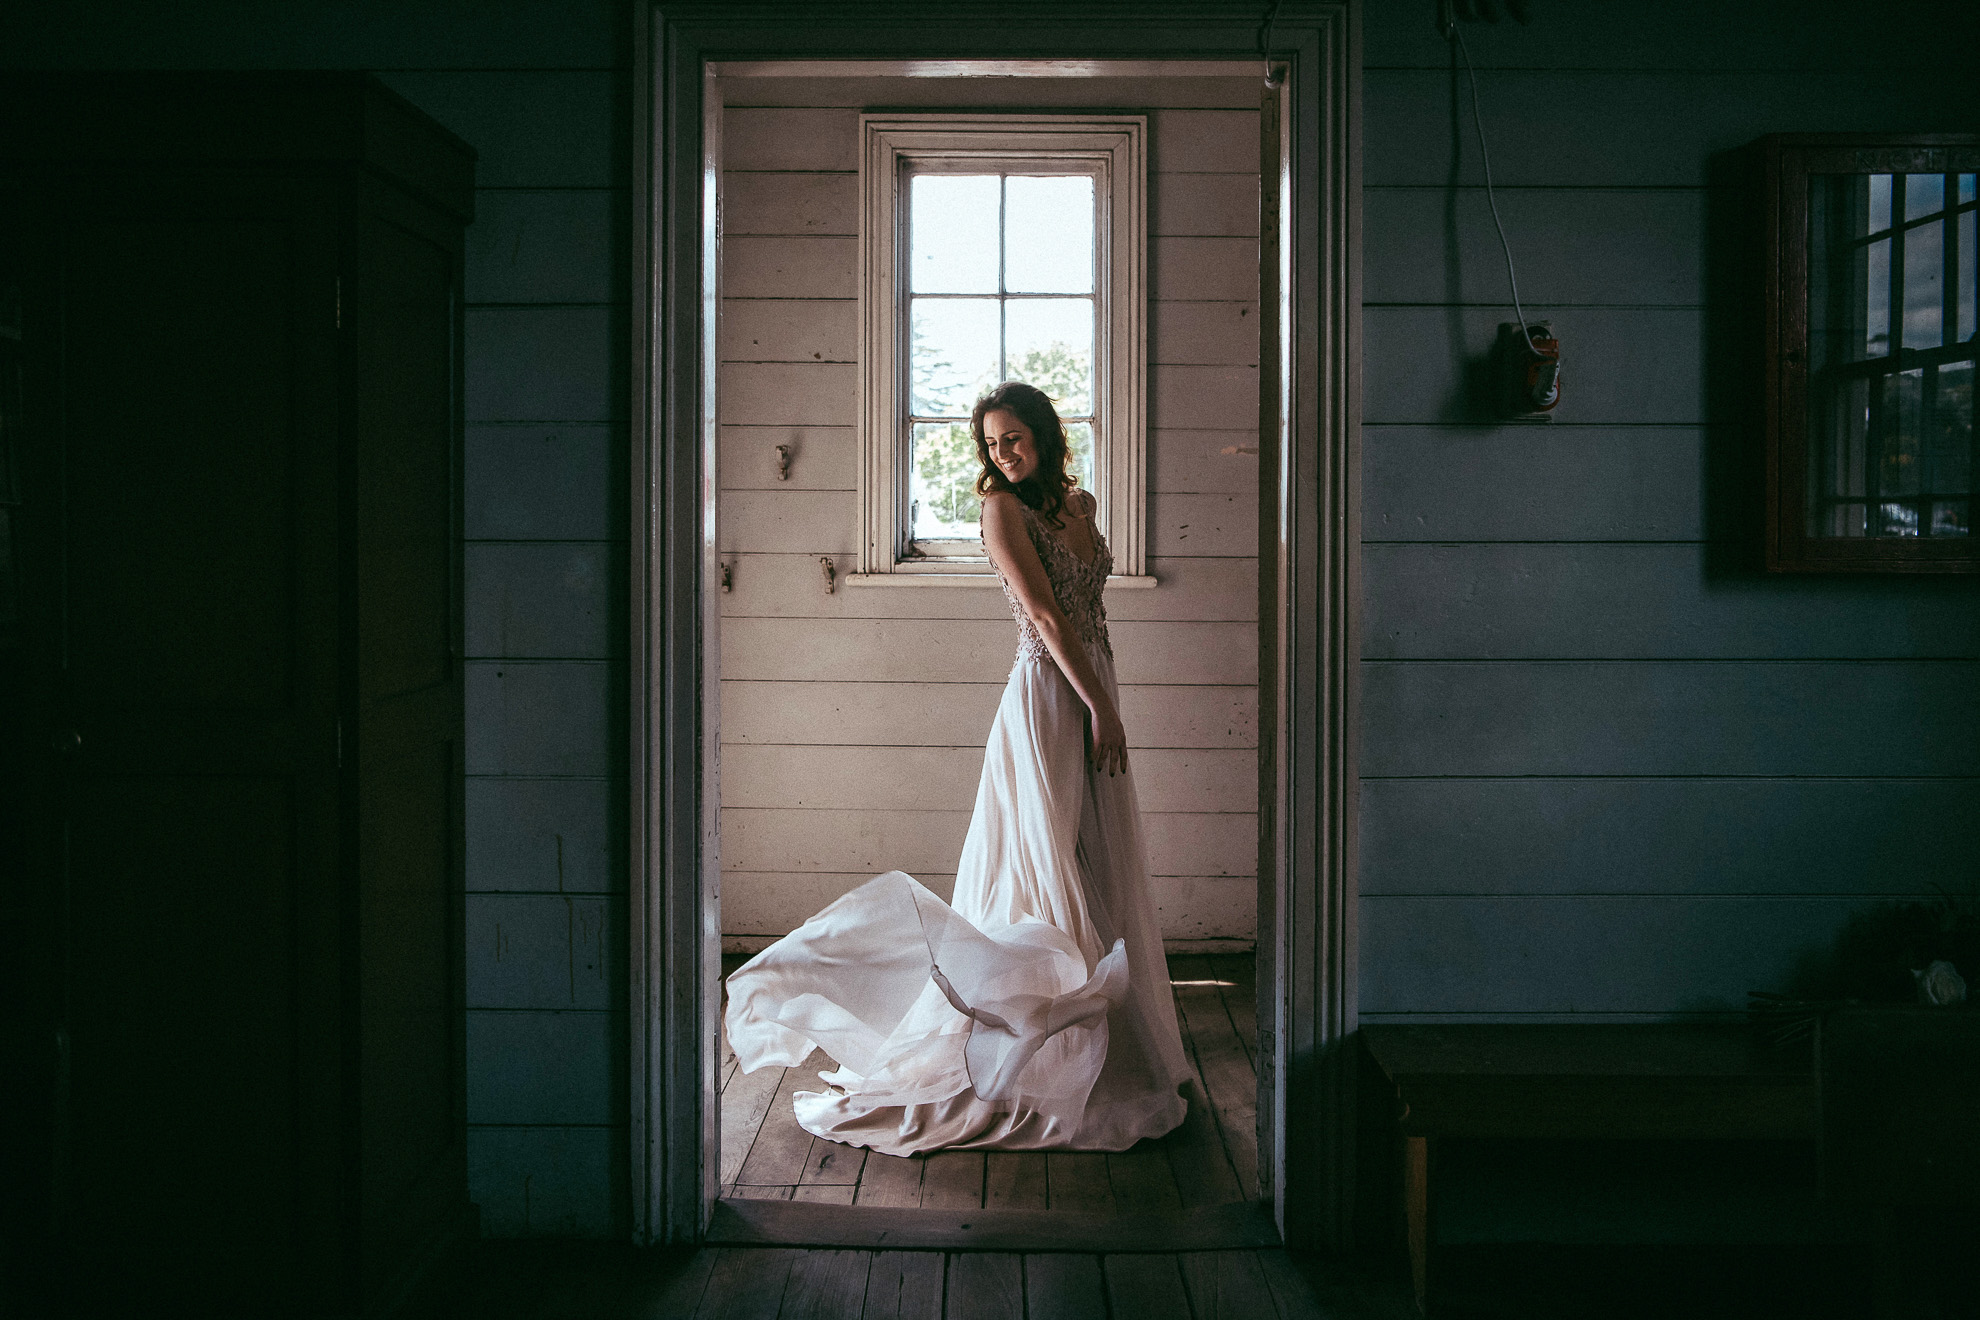 styled-shoot-by-levien-339.JPG